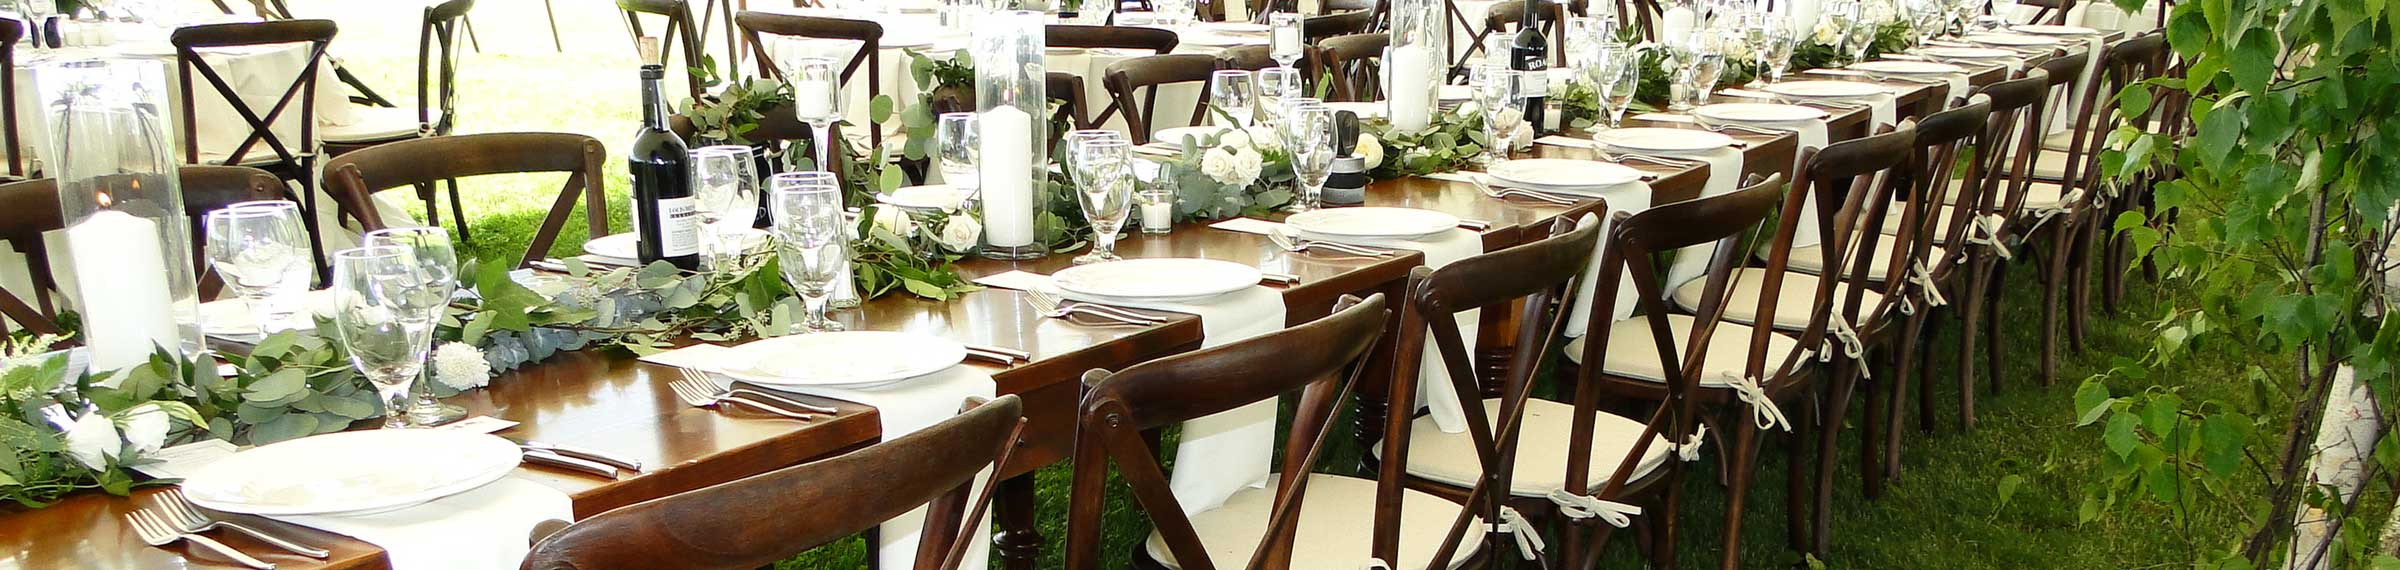 Columbia Tent Rentals has banquet tables for your wedding or office party